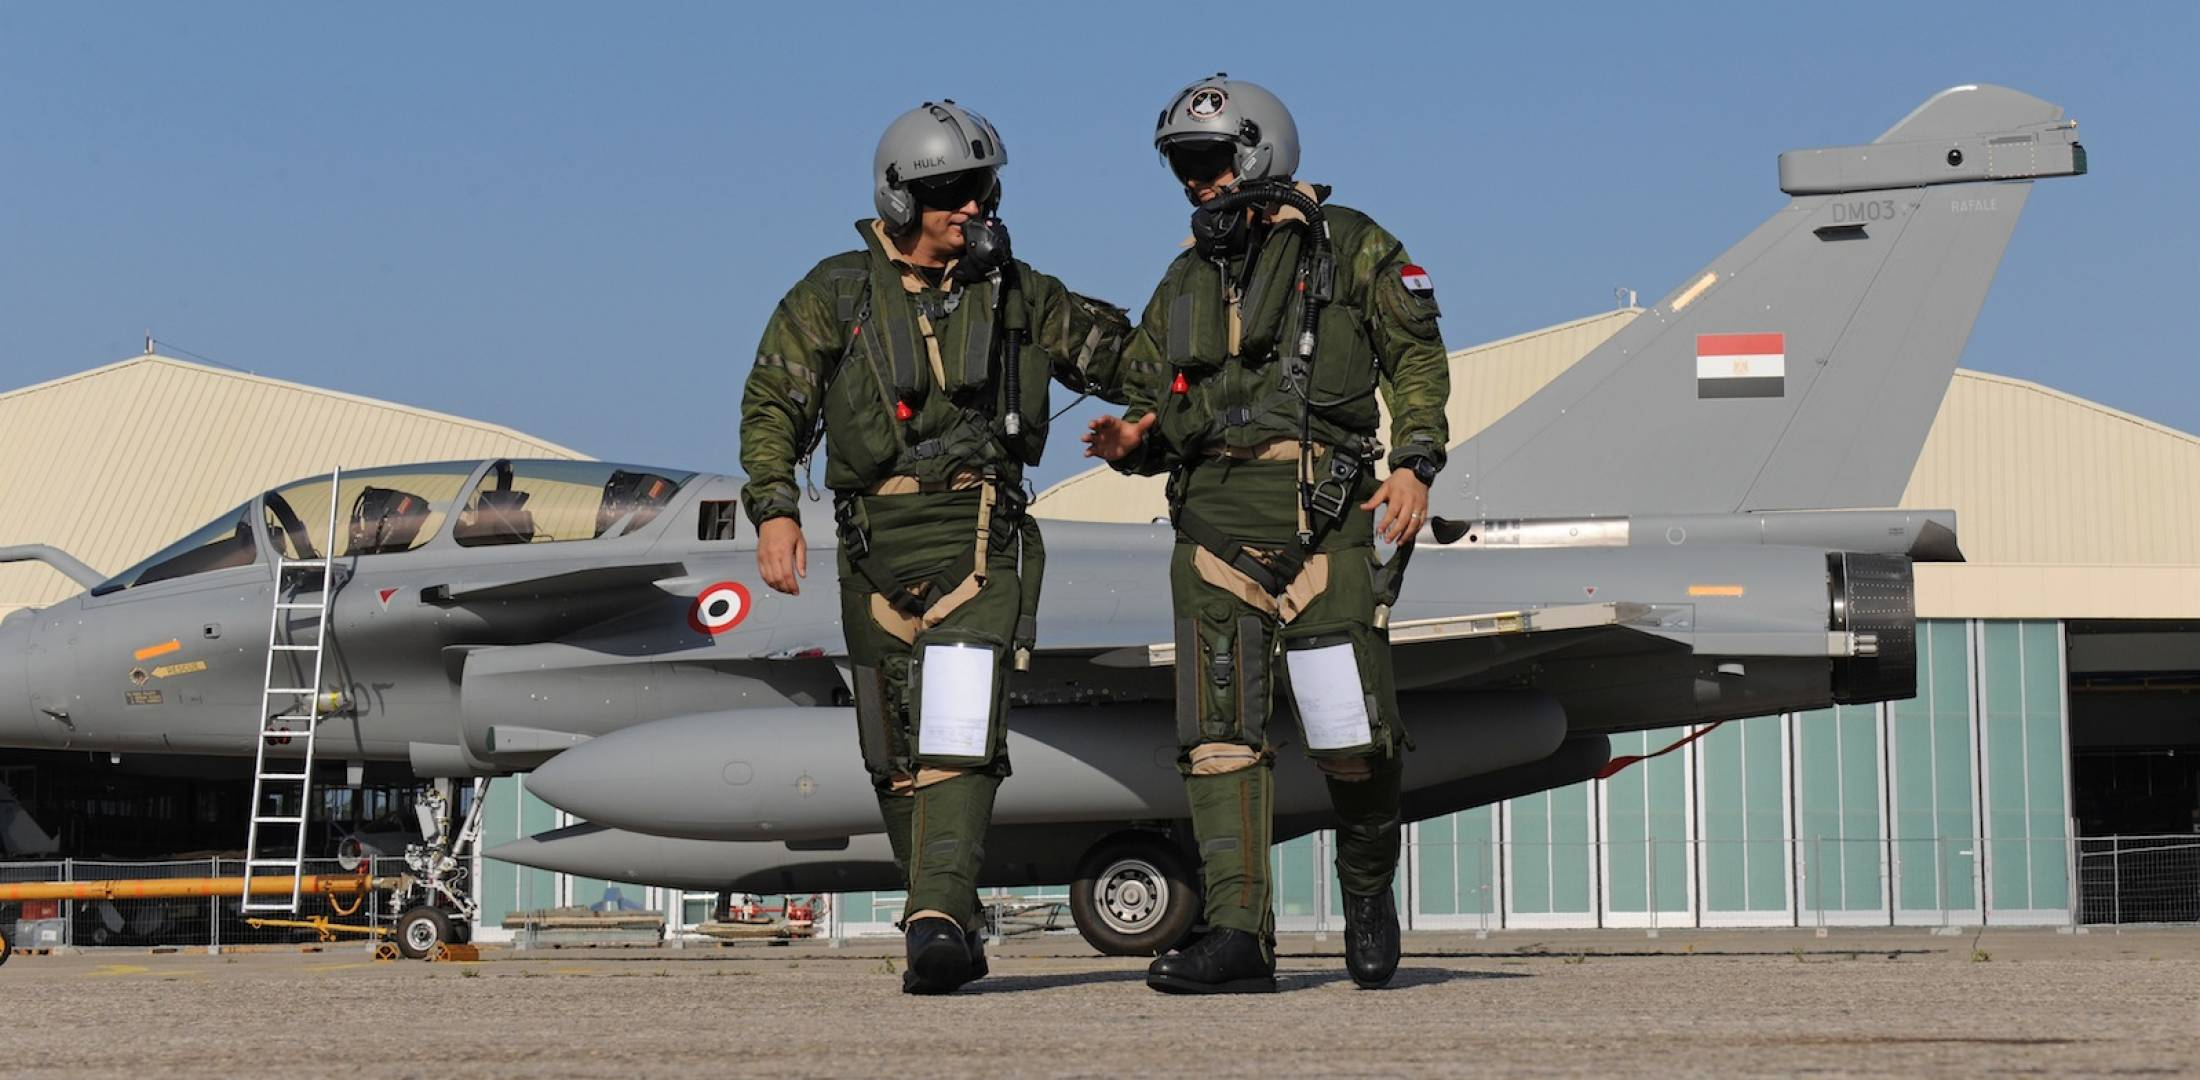 Egyptian pilots with Dassault Rafale fighter